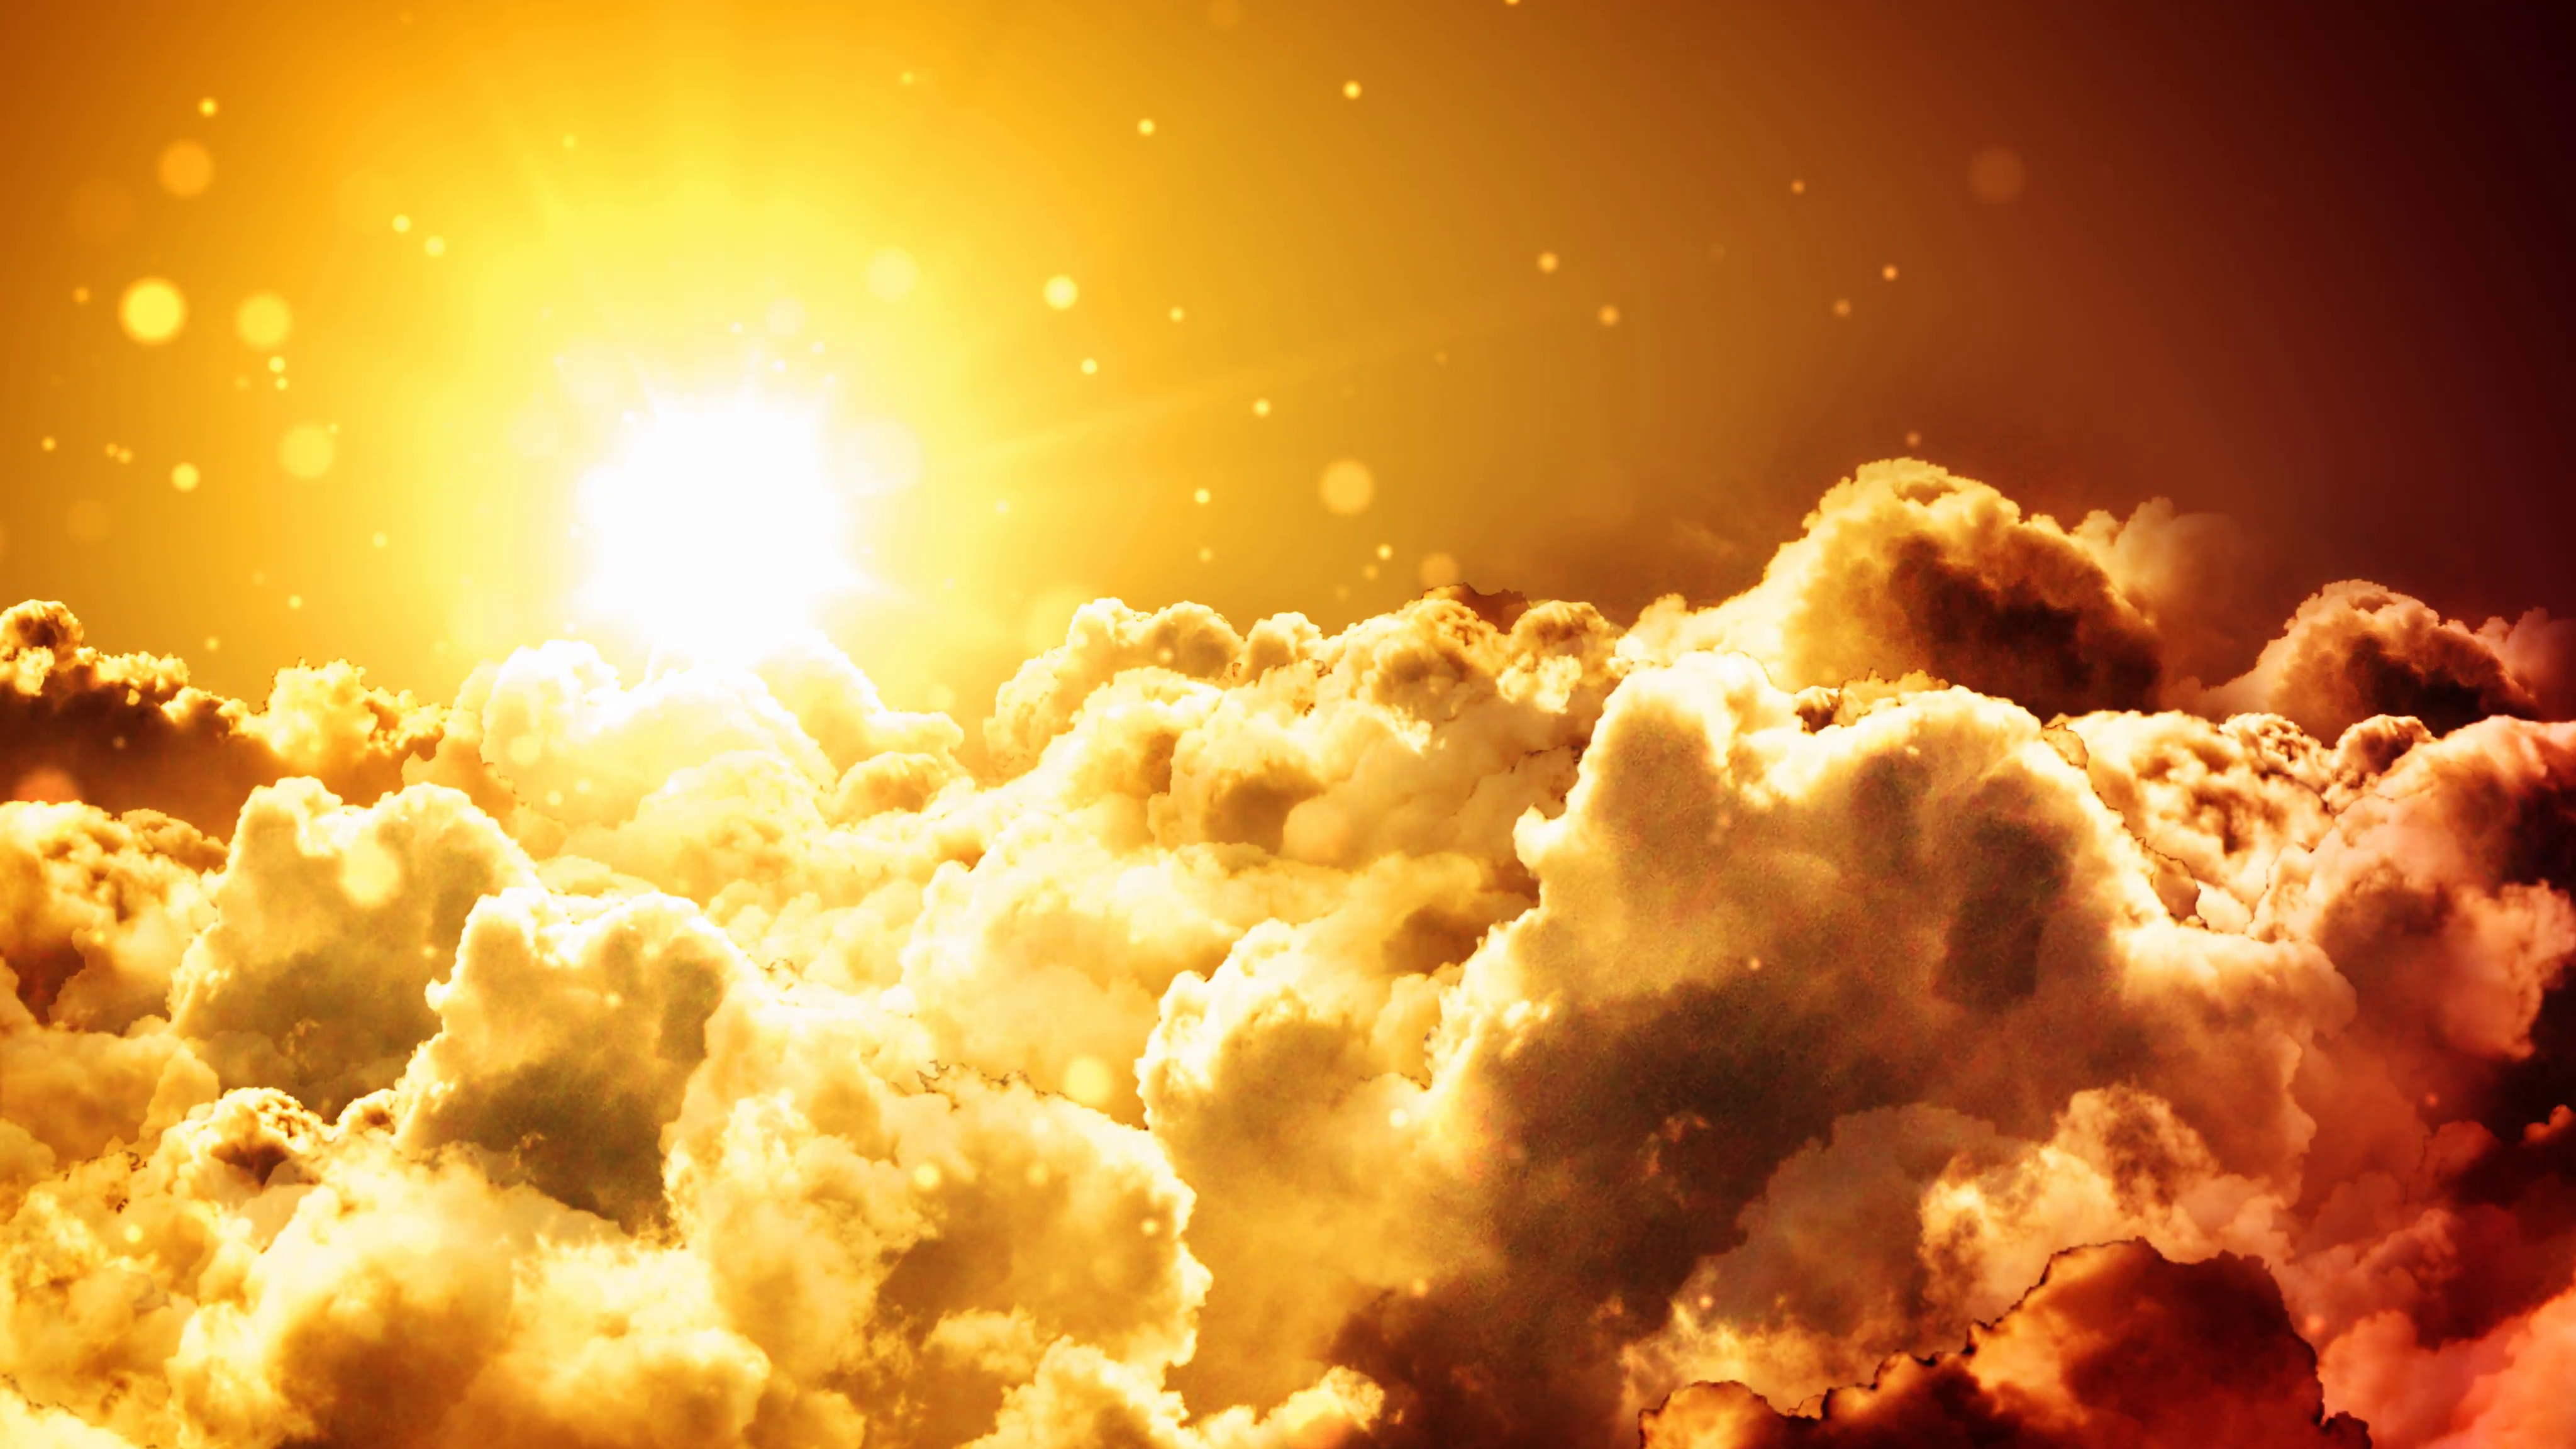 glorious-heaven-background_njd-yfut__F0000.png